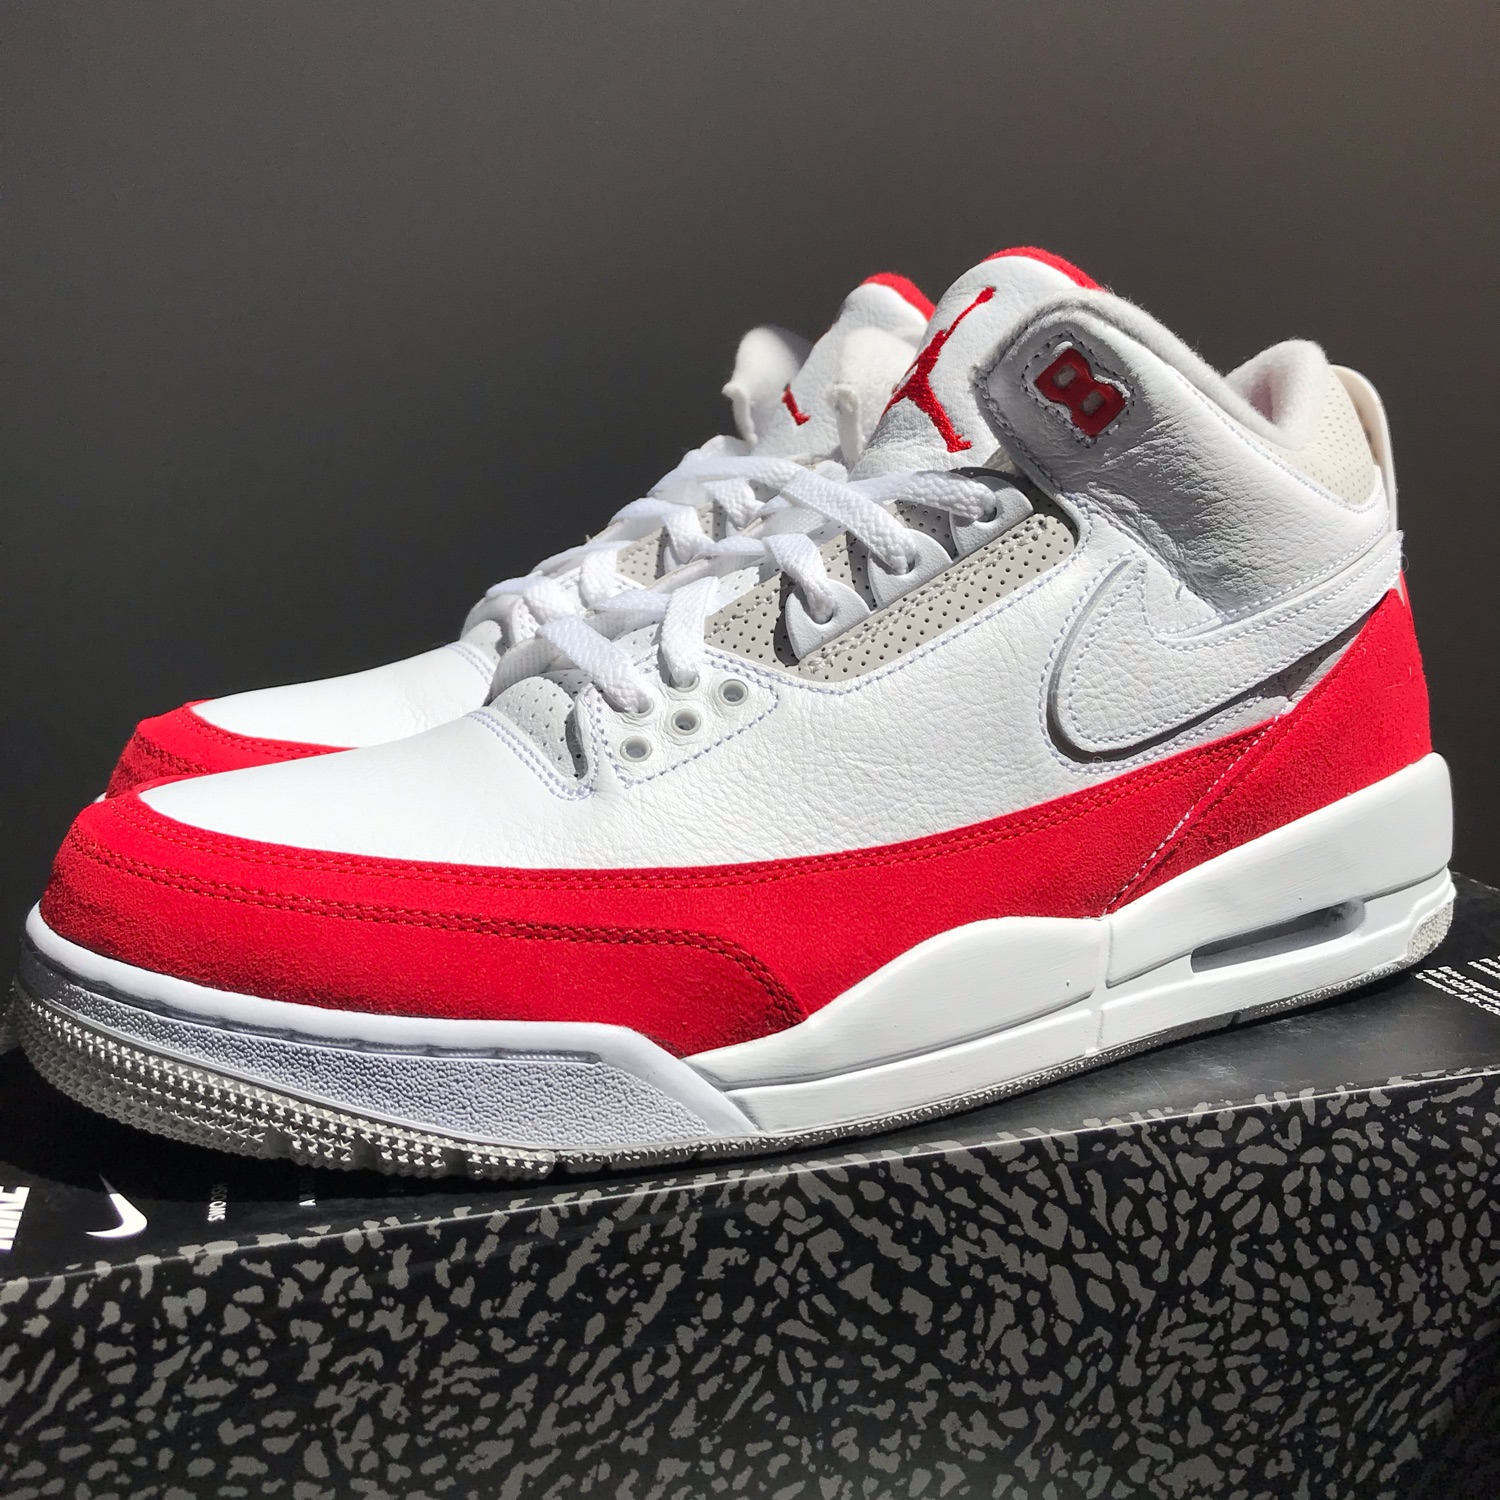 factory authentic 233ff 6e129 Nike Air Jordan 3 Retro Tinker Hatfield Sp